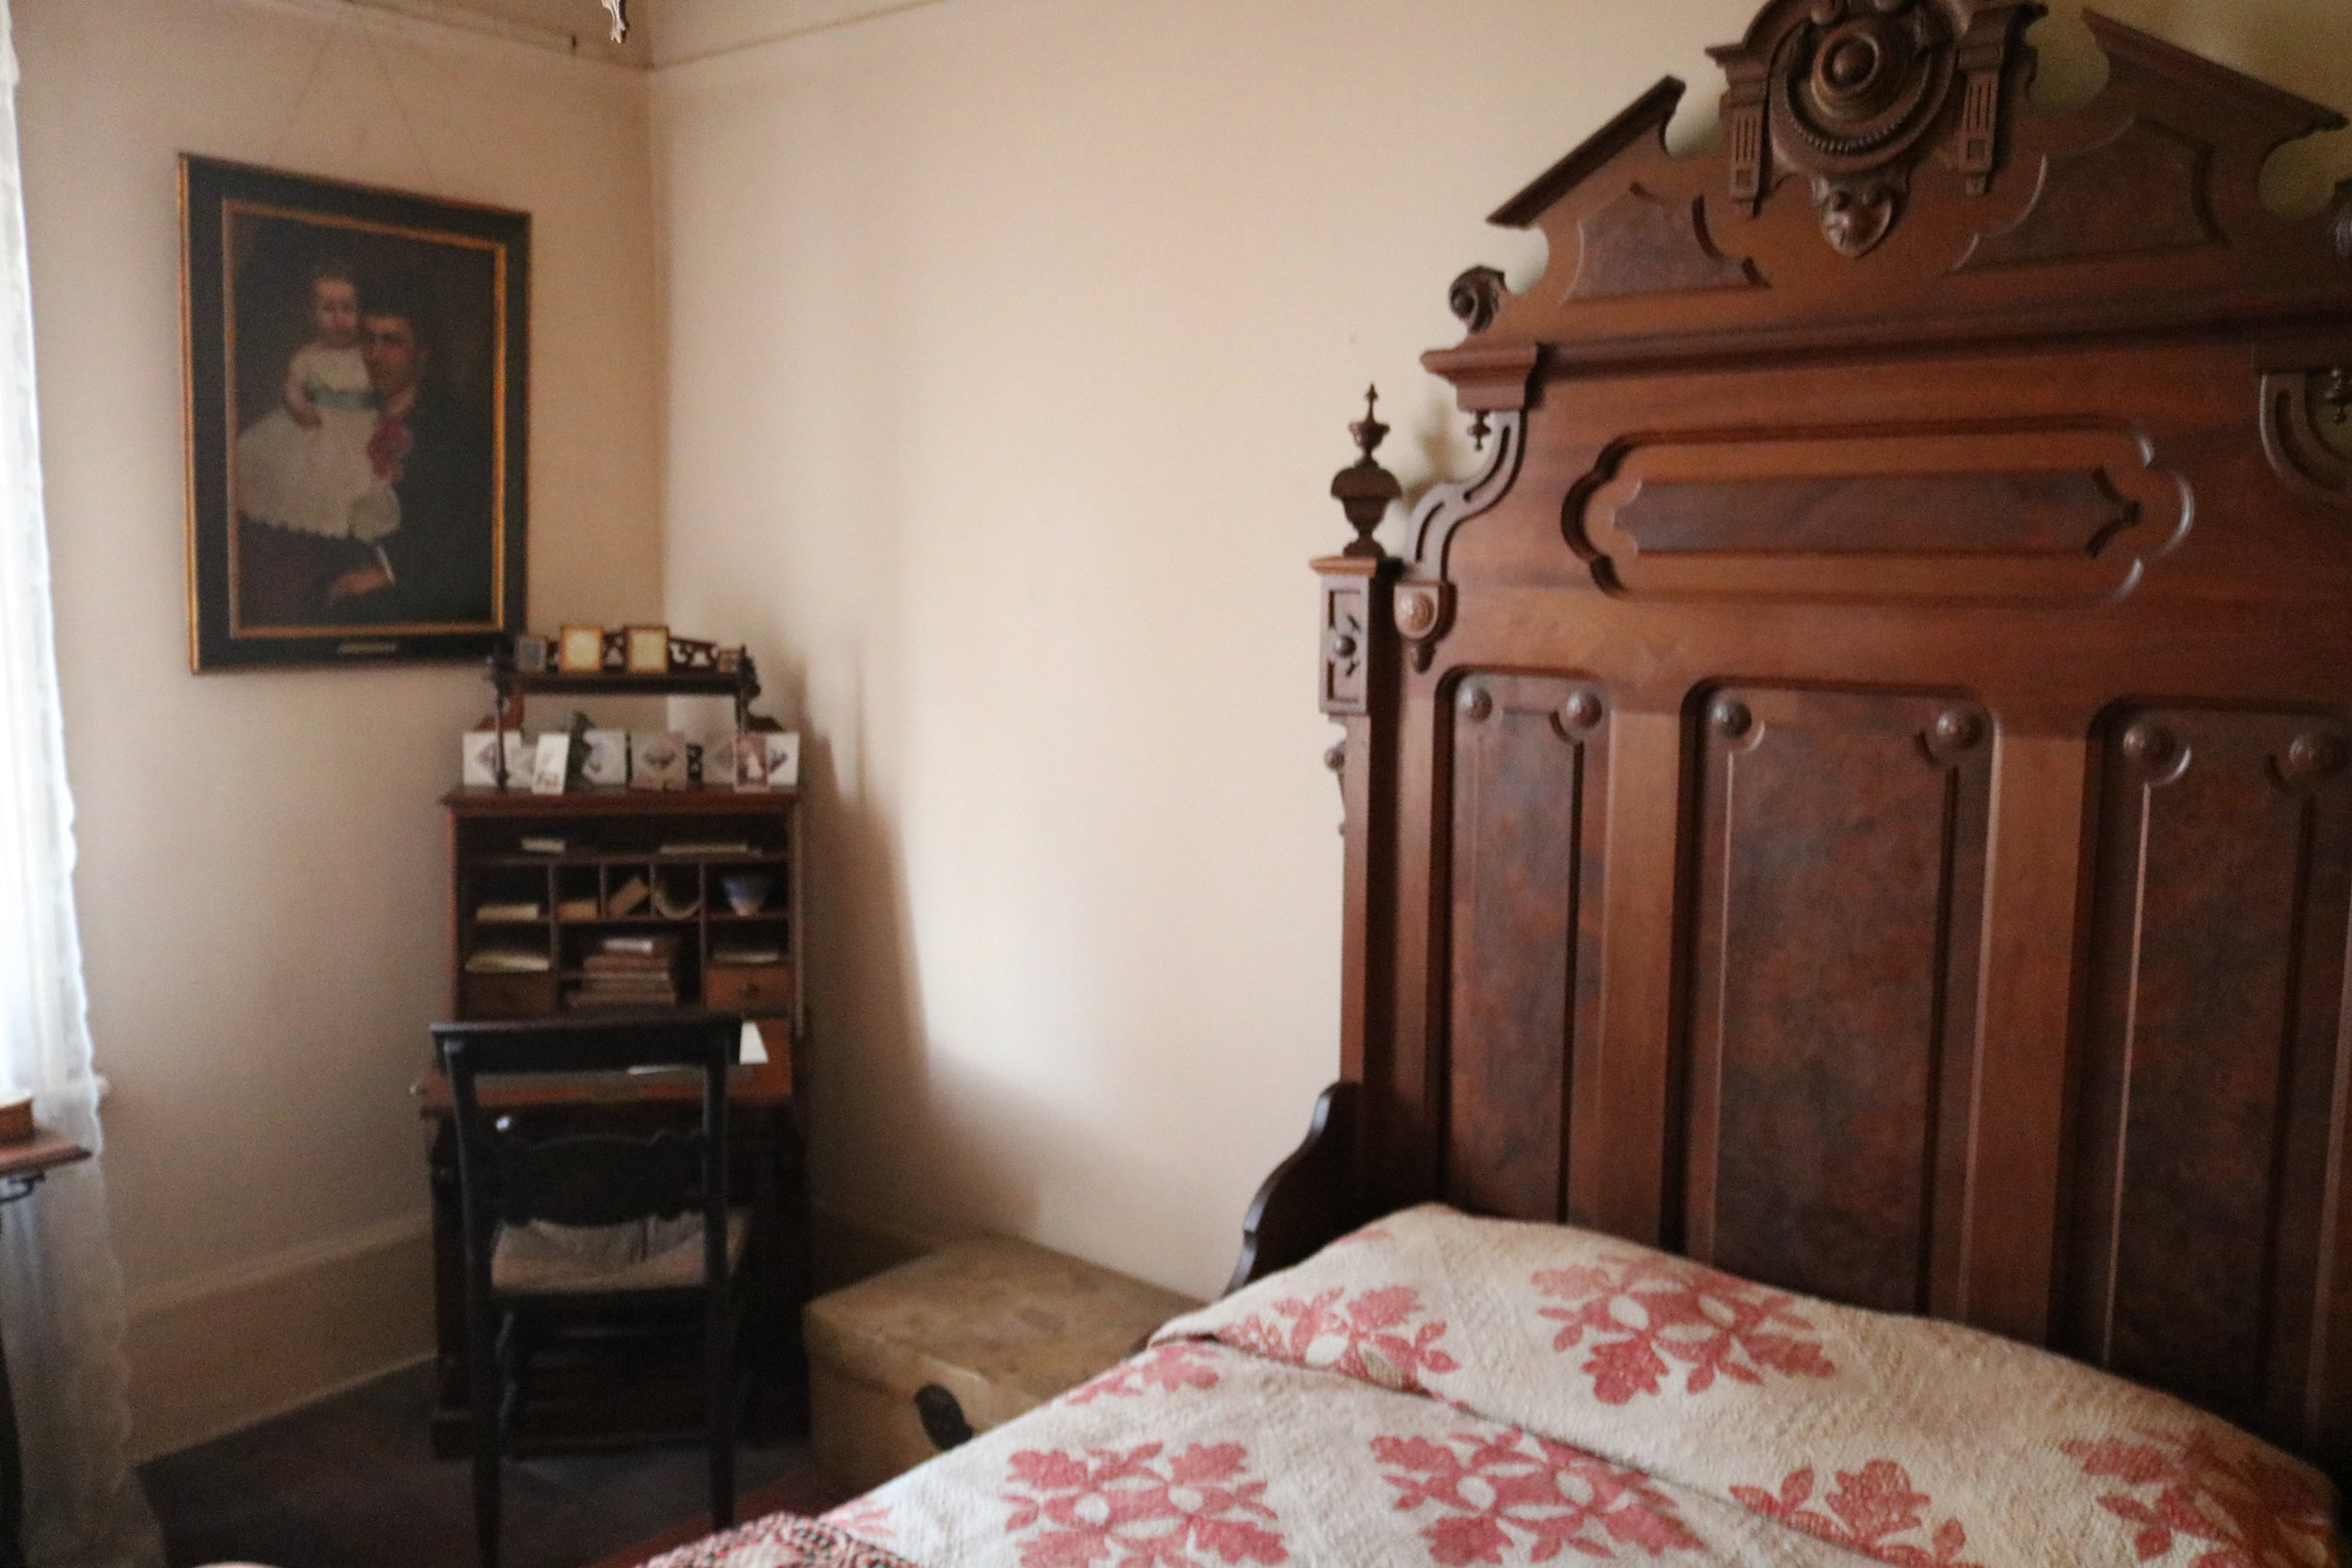 Thomas Whaley's bedroom, Whaley House